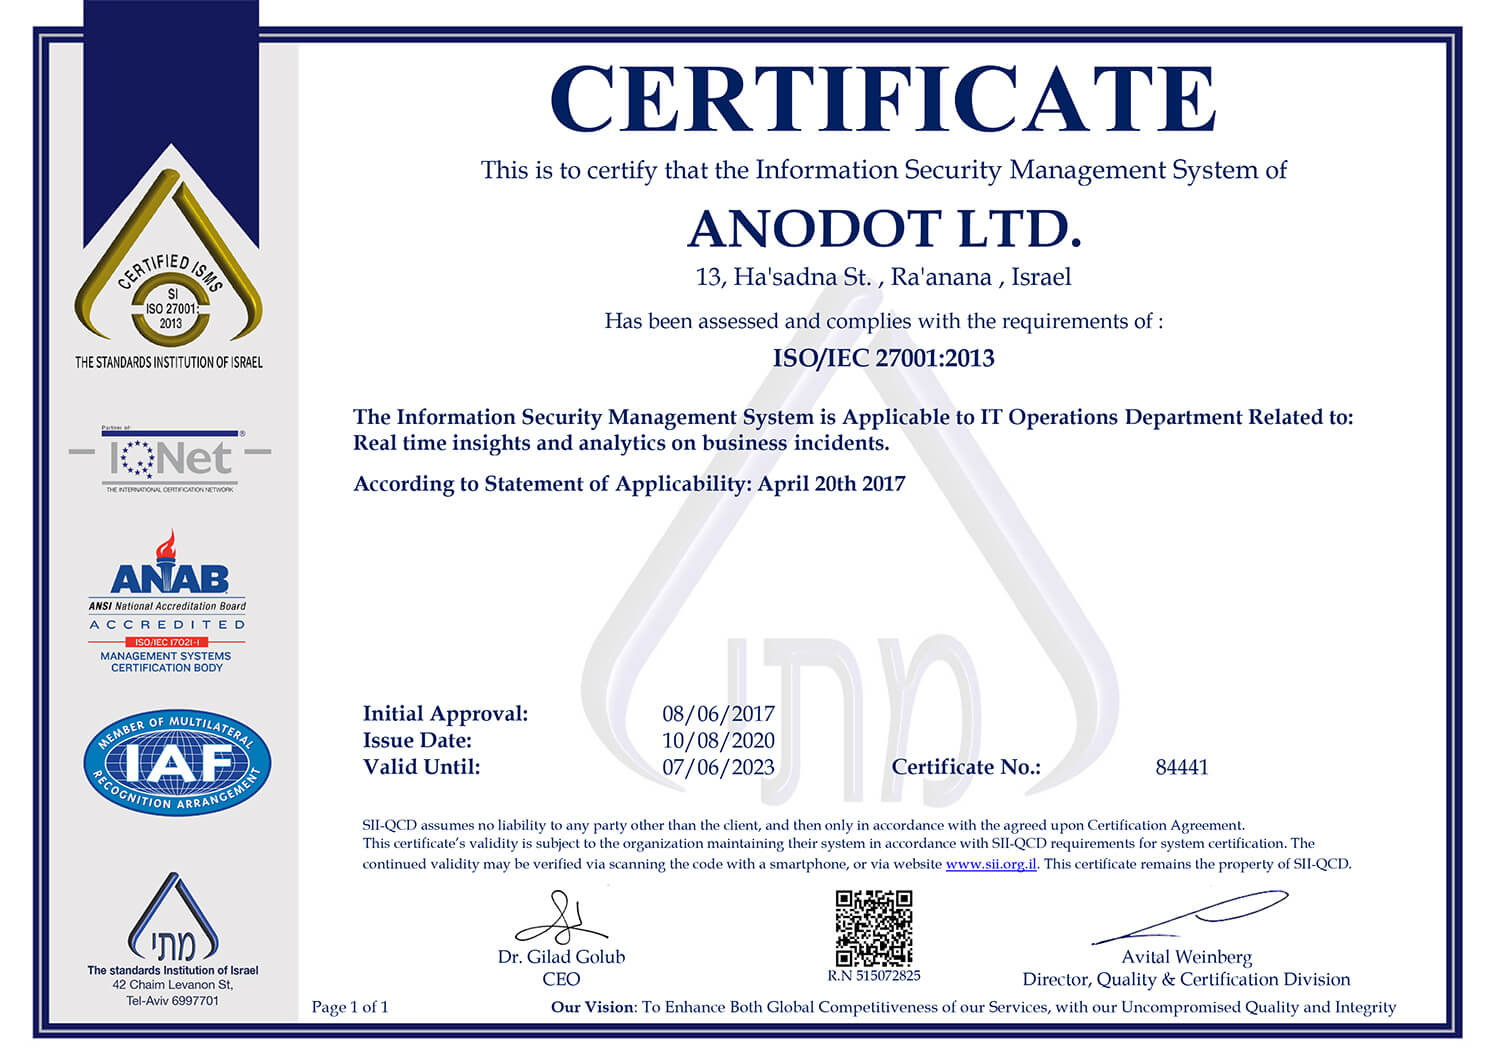 Anodot Security Statement